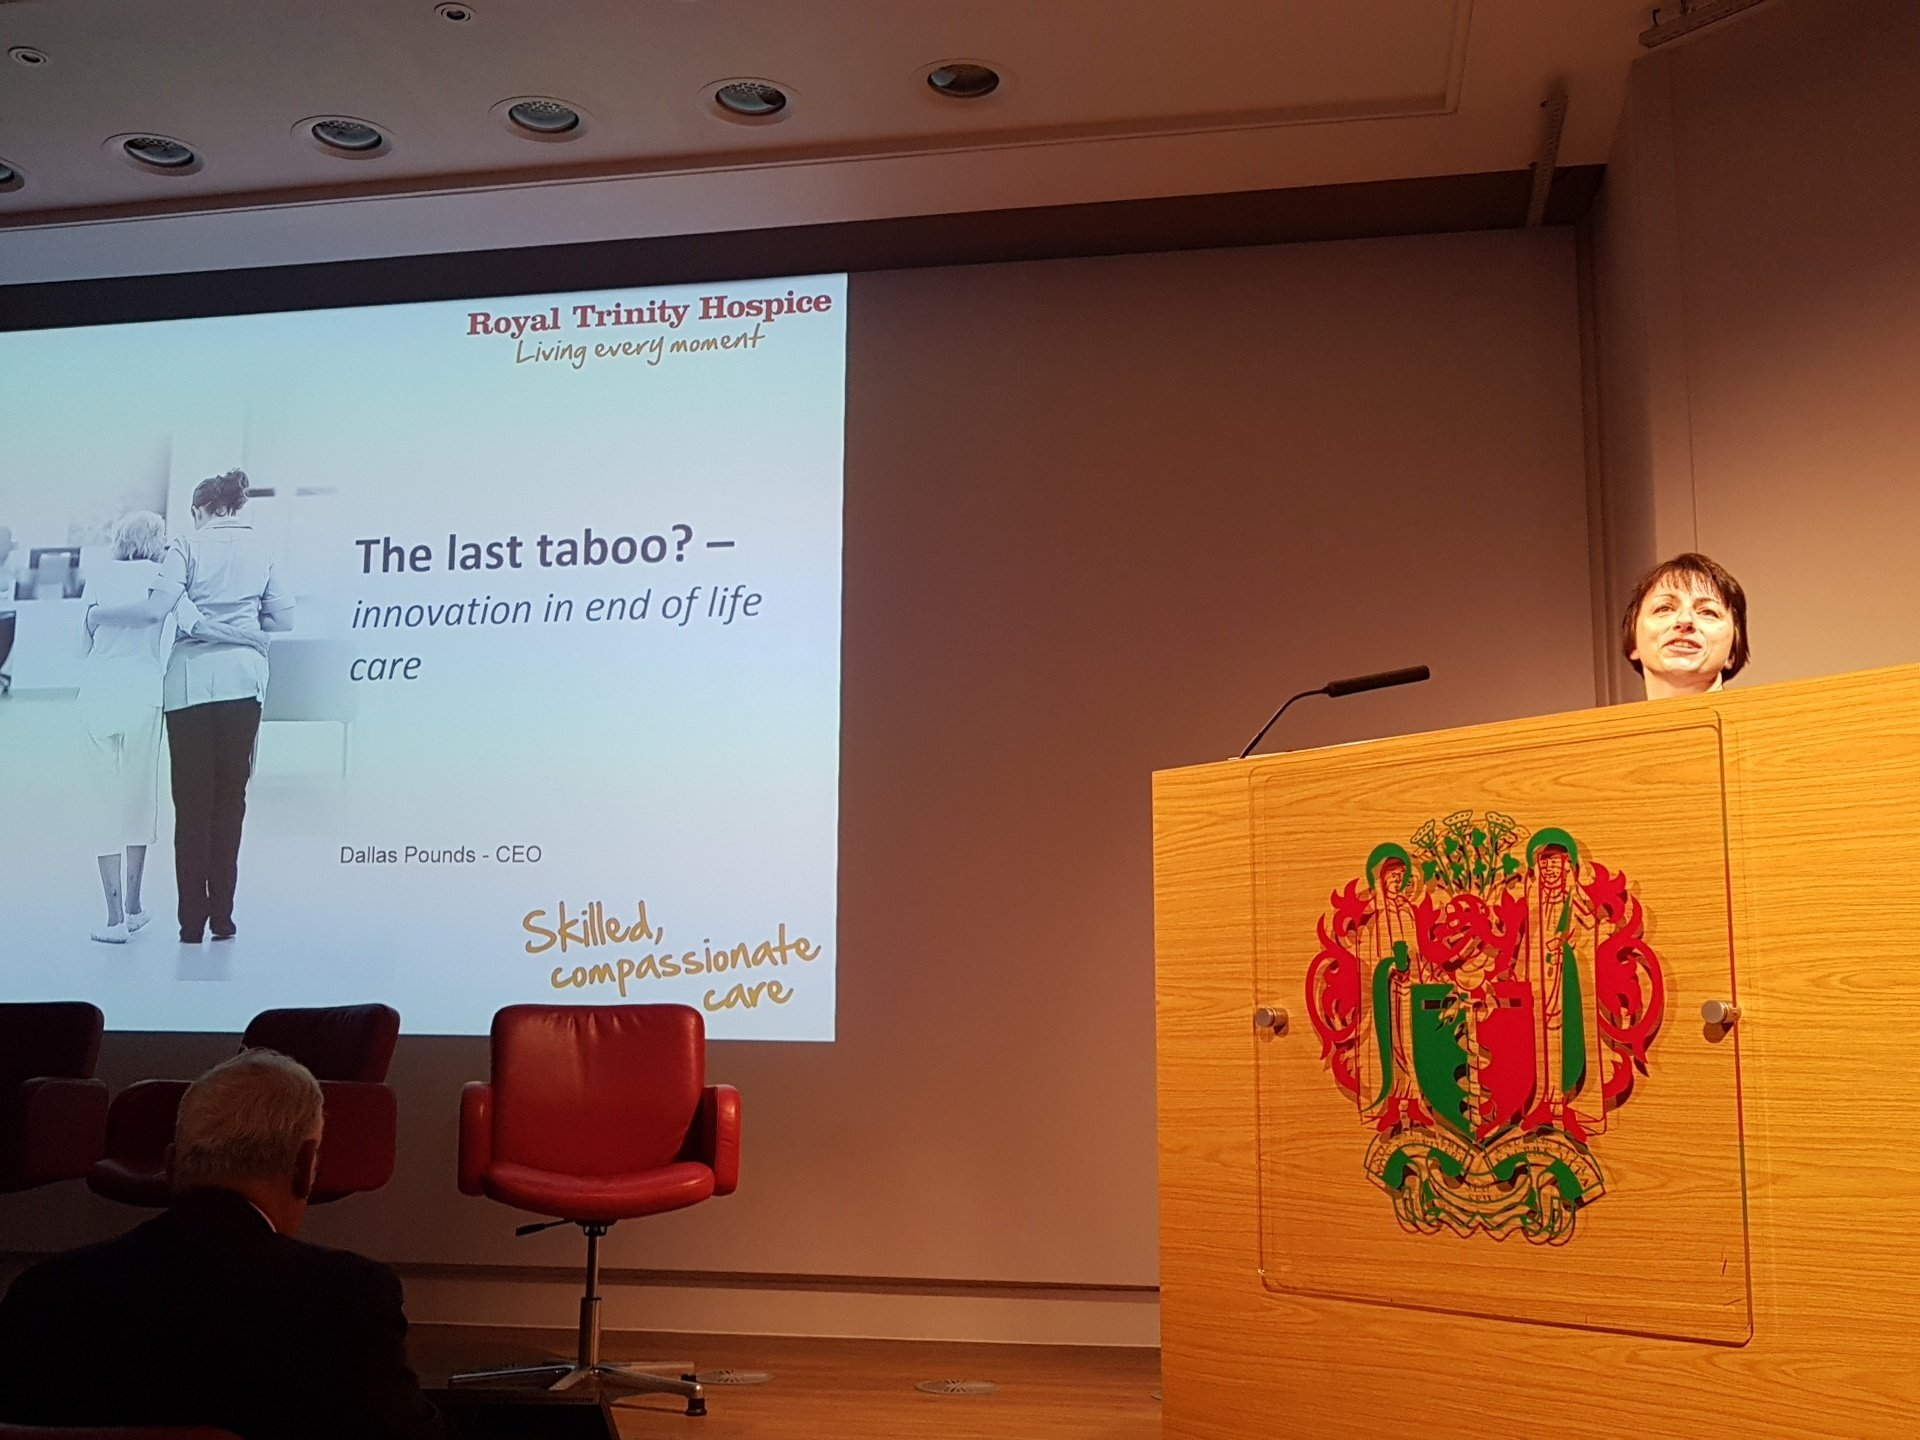 #innovation in Palliative care from @dallaspounds - the last taboo? #medinnov @stwilfridstweet https://t.co/rBLtUQFIlH